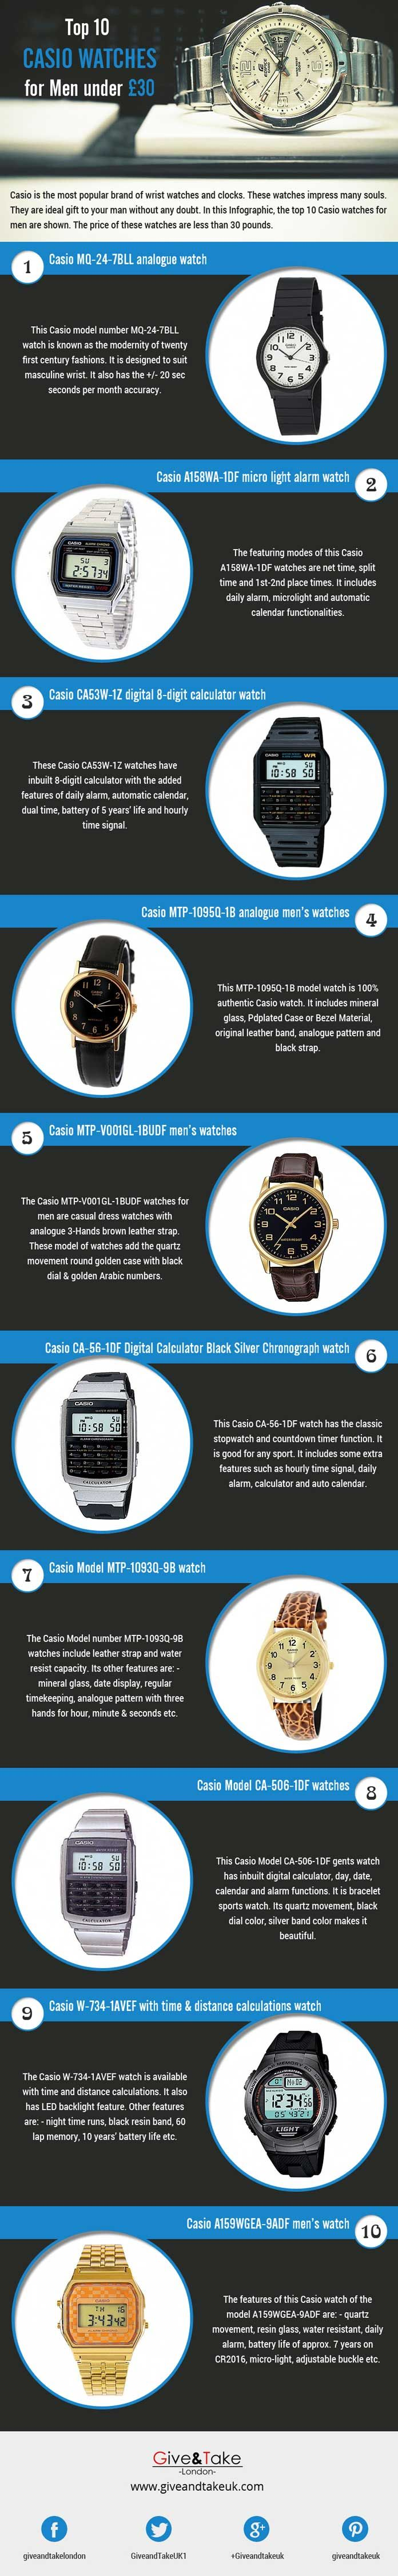 Casio is the most popular brand for electronic items especially it is best known for quality watches. You can buy these watches at cheap price. In this Infographic, top 10 Casio watches for men are described which are available at price of less than £30.